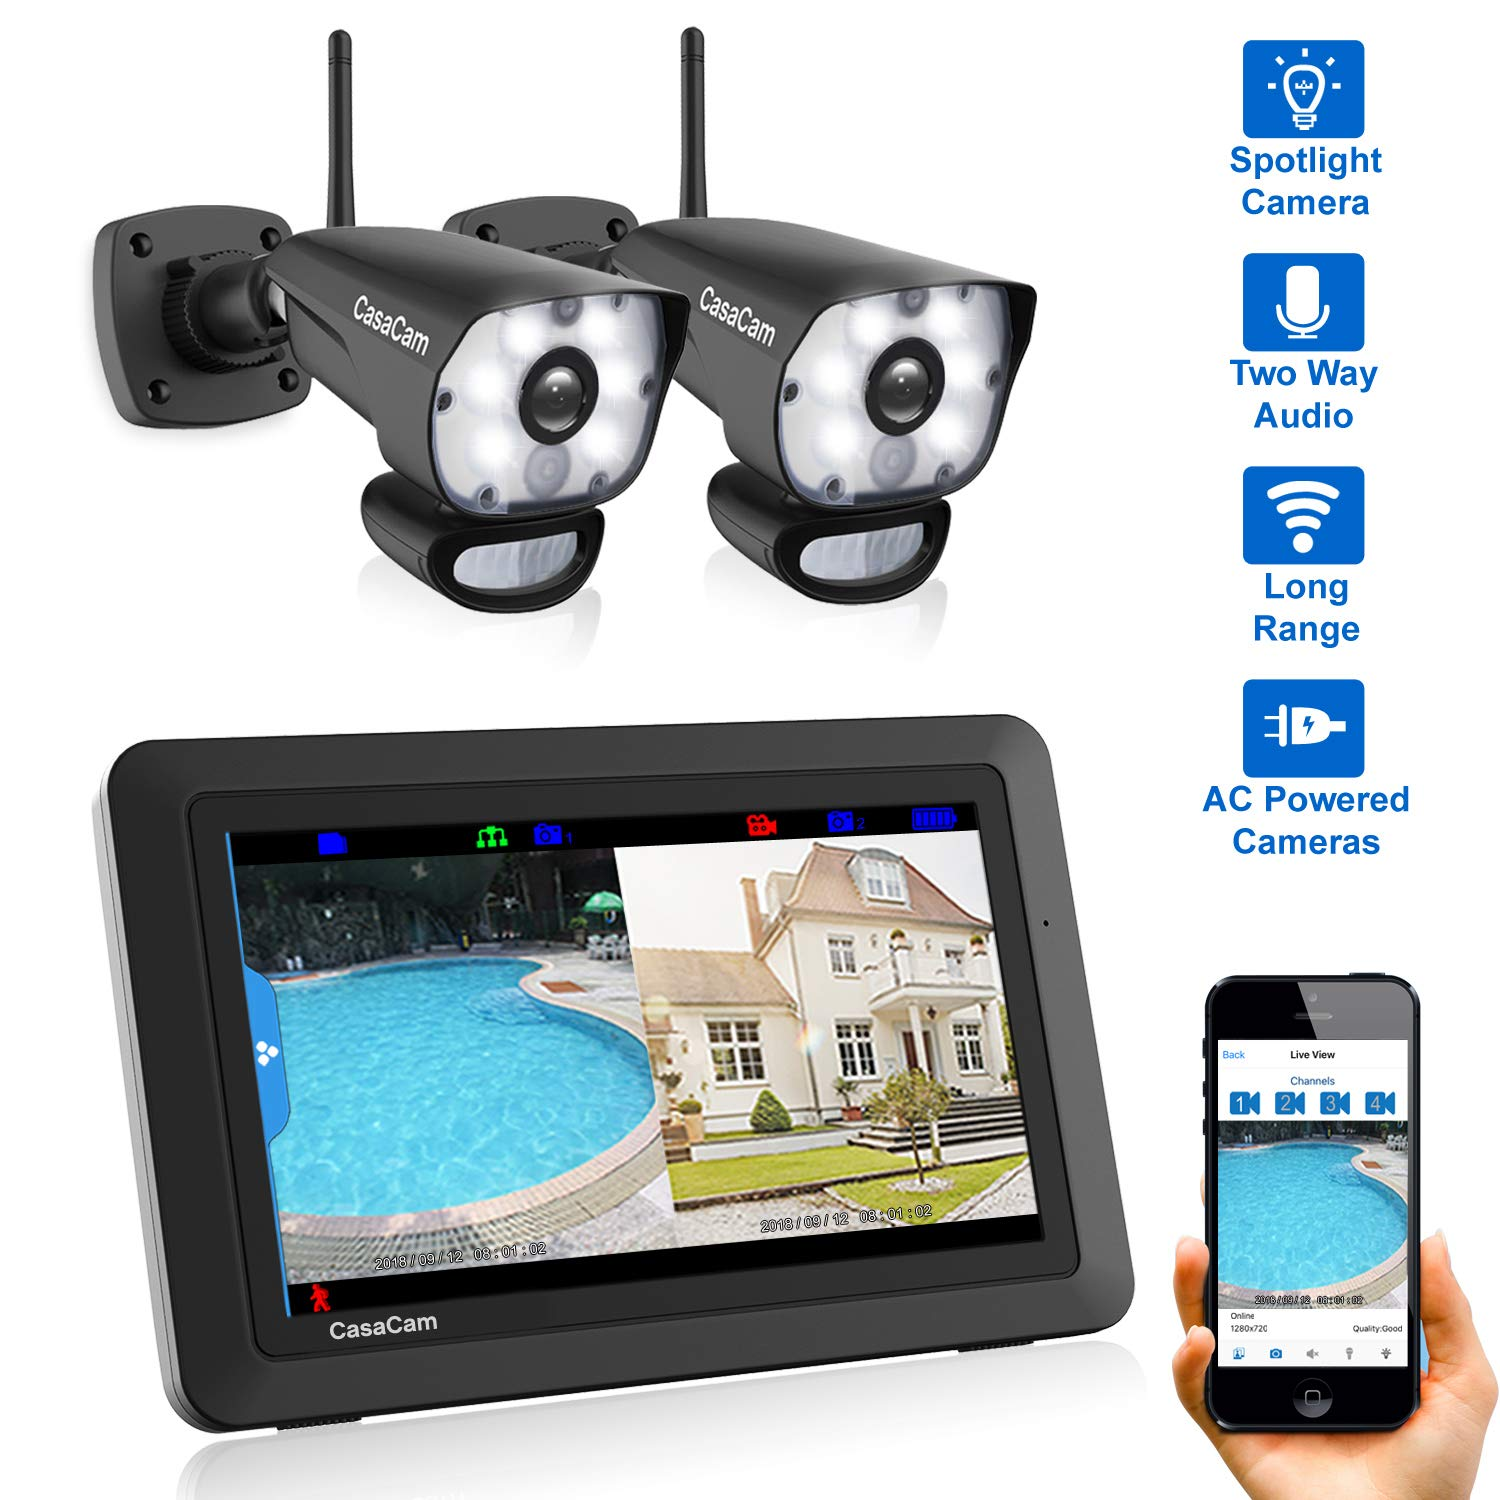 """CasaCam VS1002 Wireless Security Camera System with AC Powered HD Spotlight Cameras and 7"""" Touchscreen Monitor (2-cam kit)"""